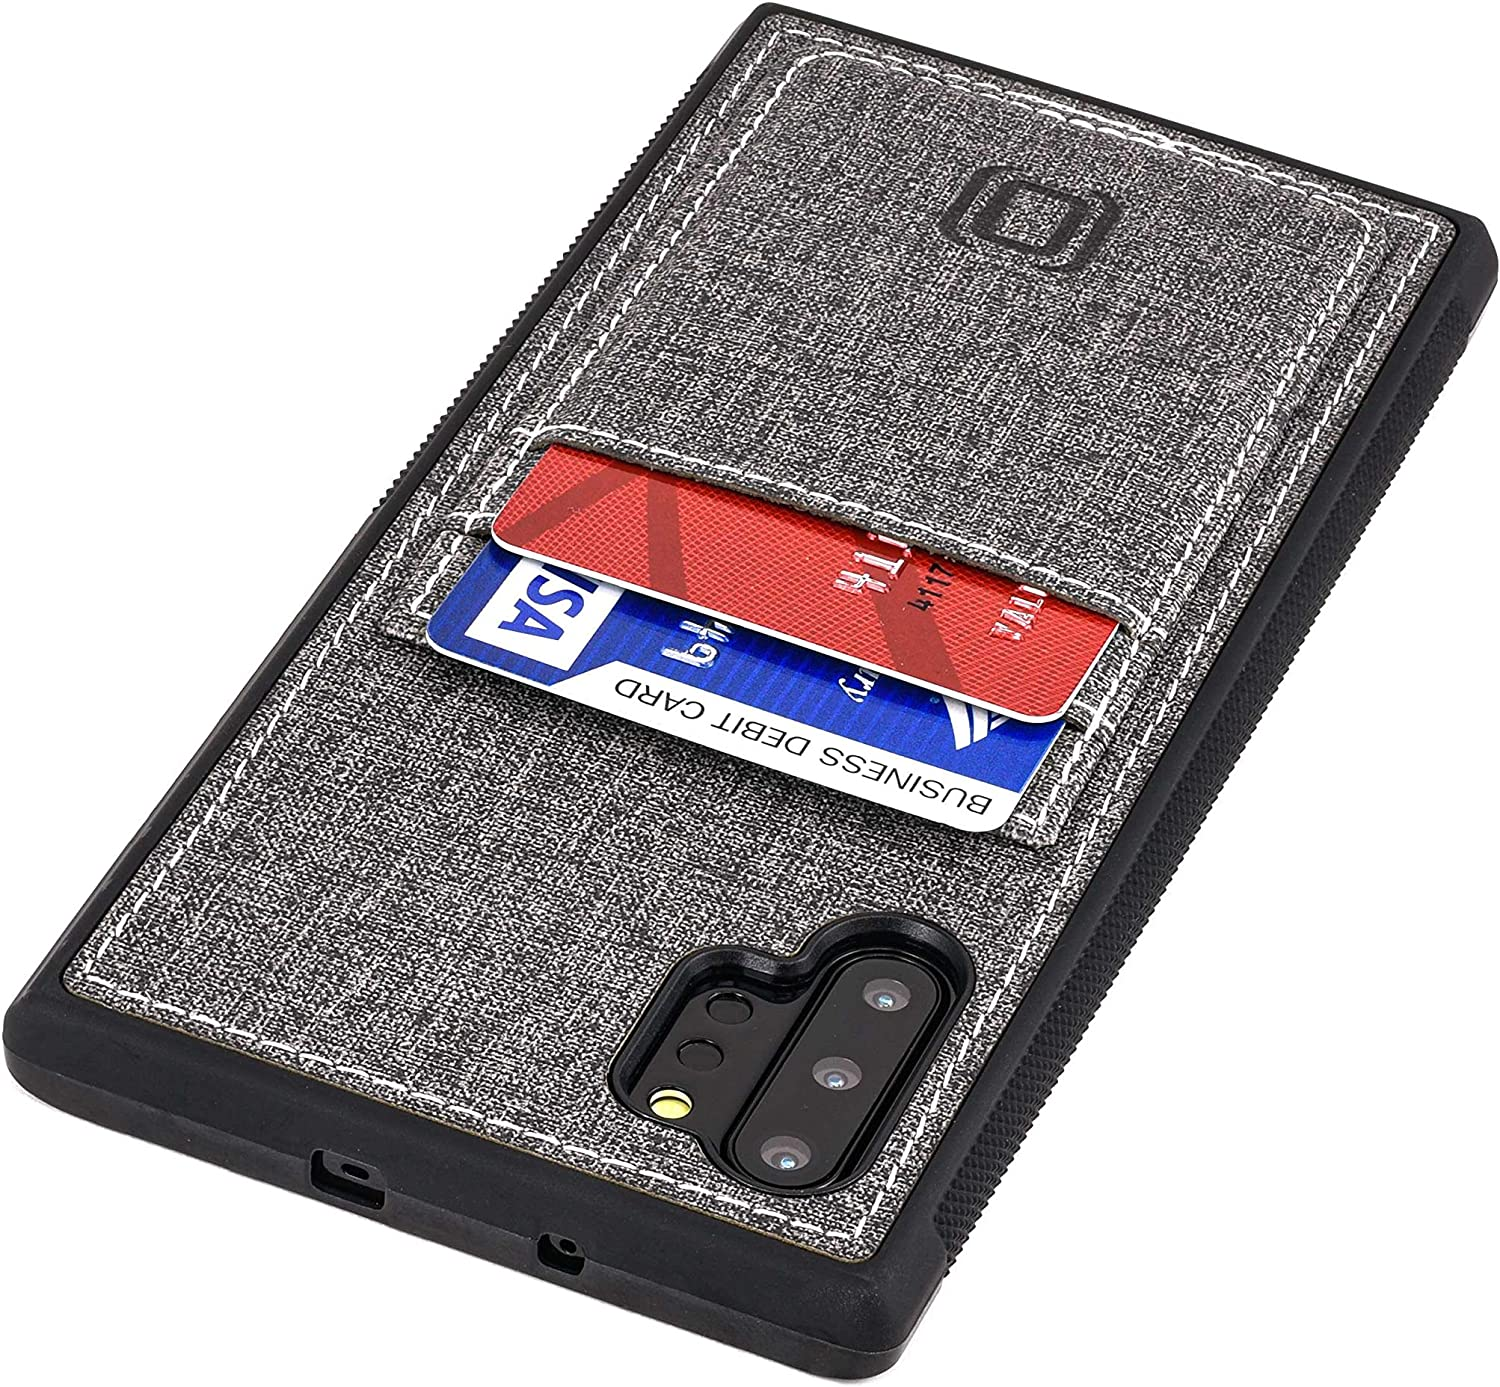 Dockem Luxe M2T Samsung Galaxy Note 10 Plus Wallet Case: Slim TPU with Canvas Synthetic Leather: Card Case with Integrated Metal Plate for Magnetic Mounting